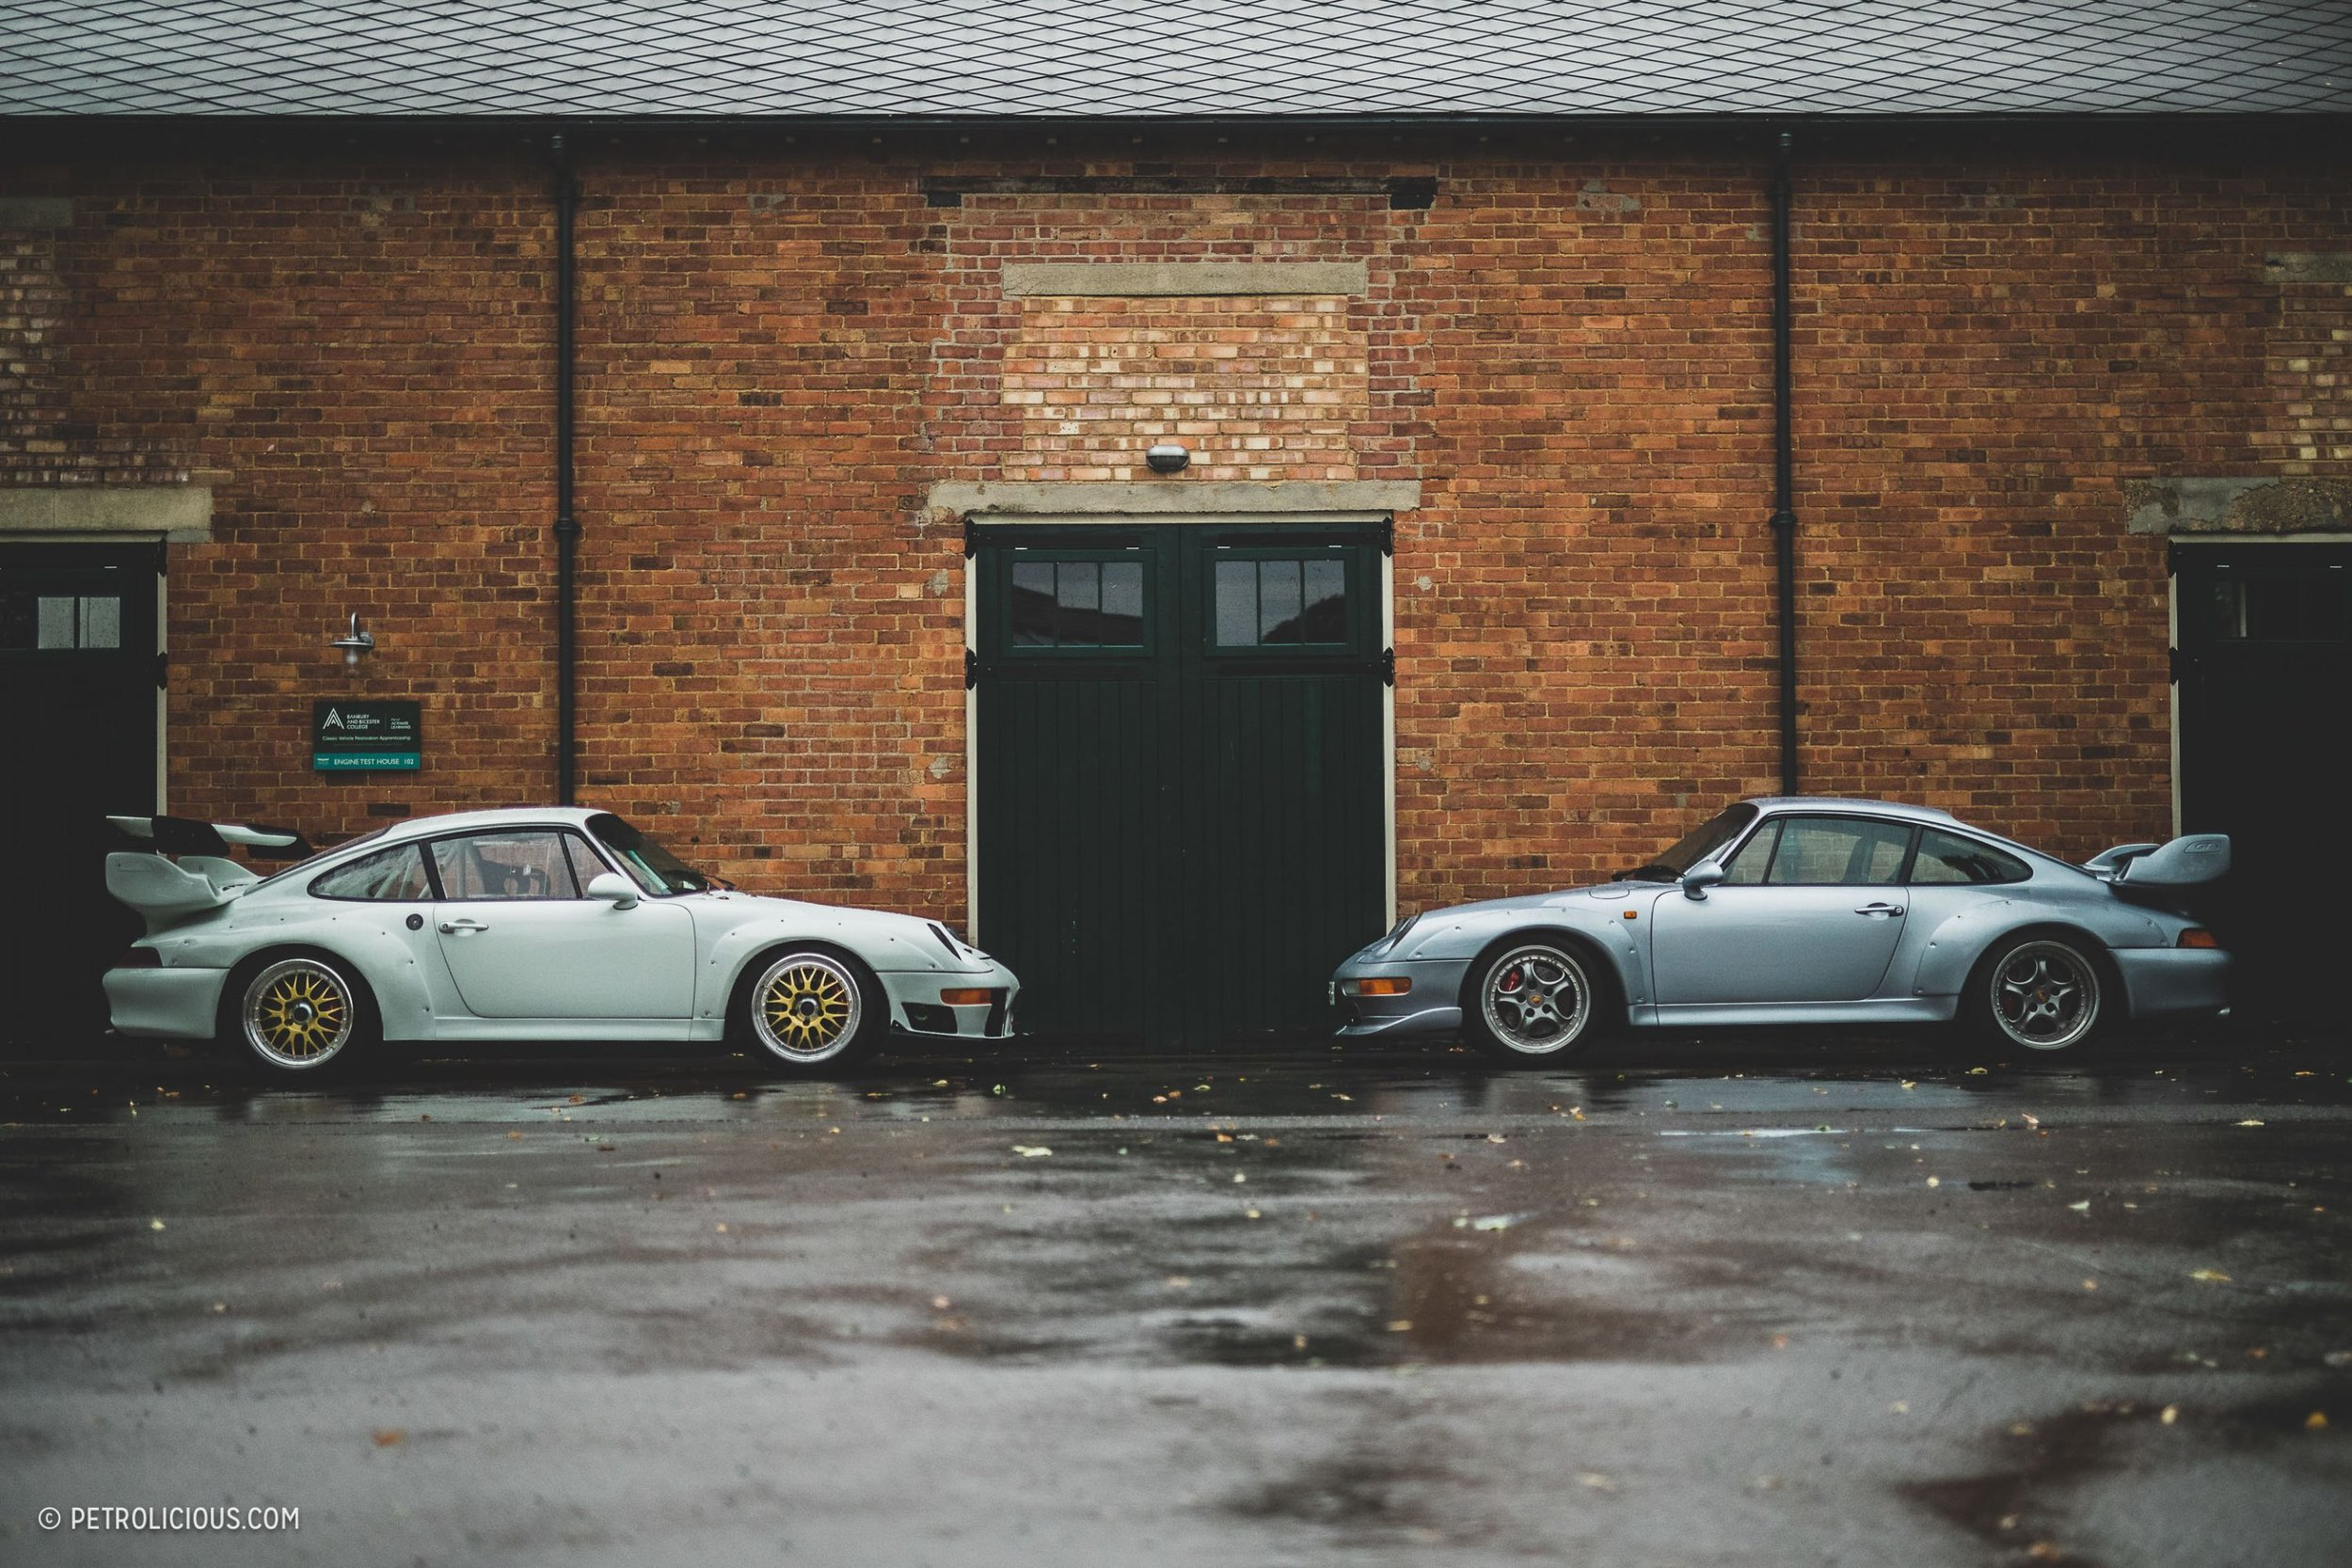 Will-Broadhead-Luft-GB-Air-Cooled-Porsches-41-2880x1920.jpg